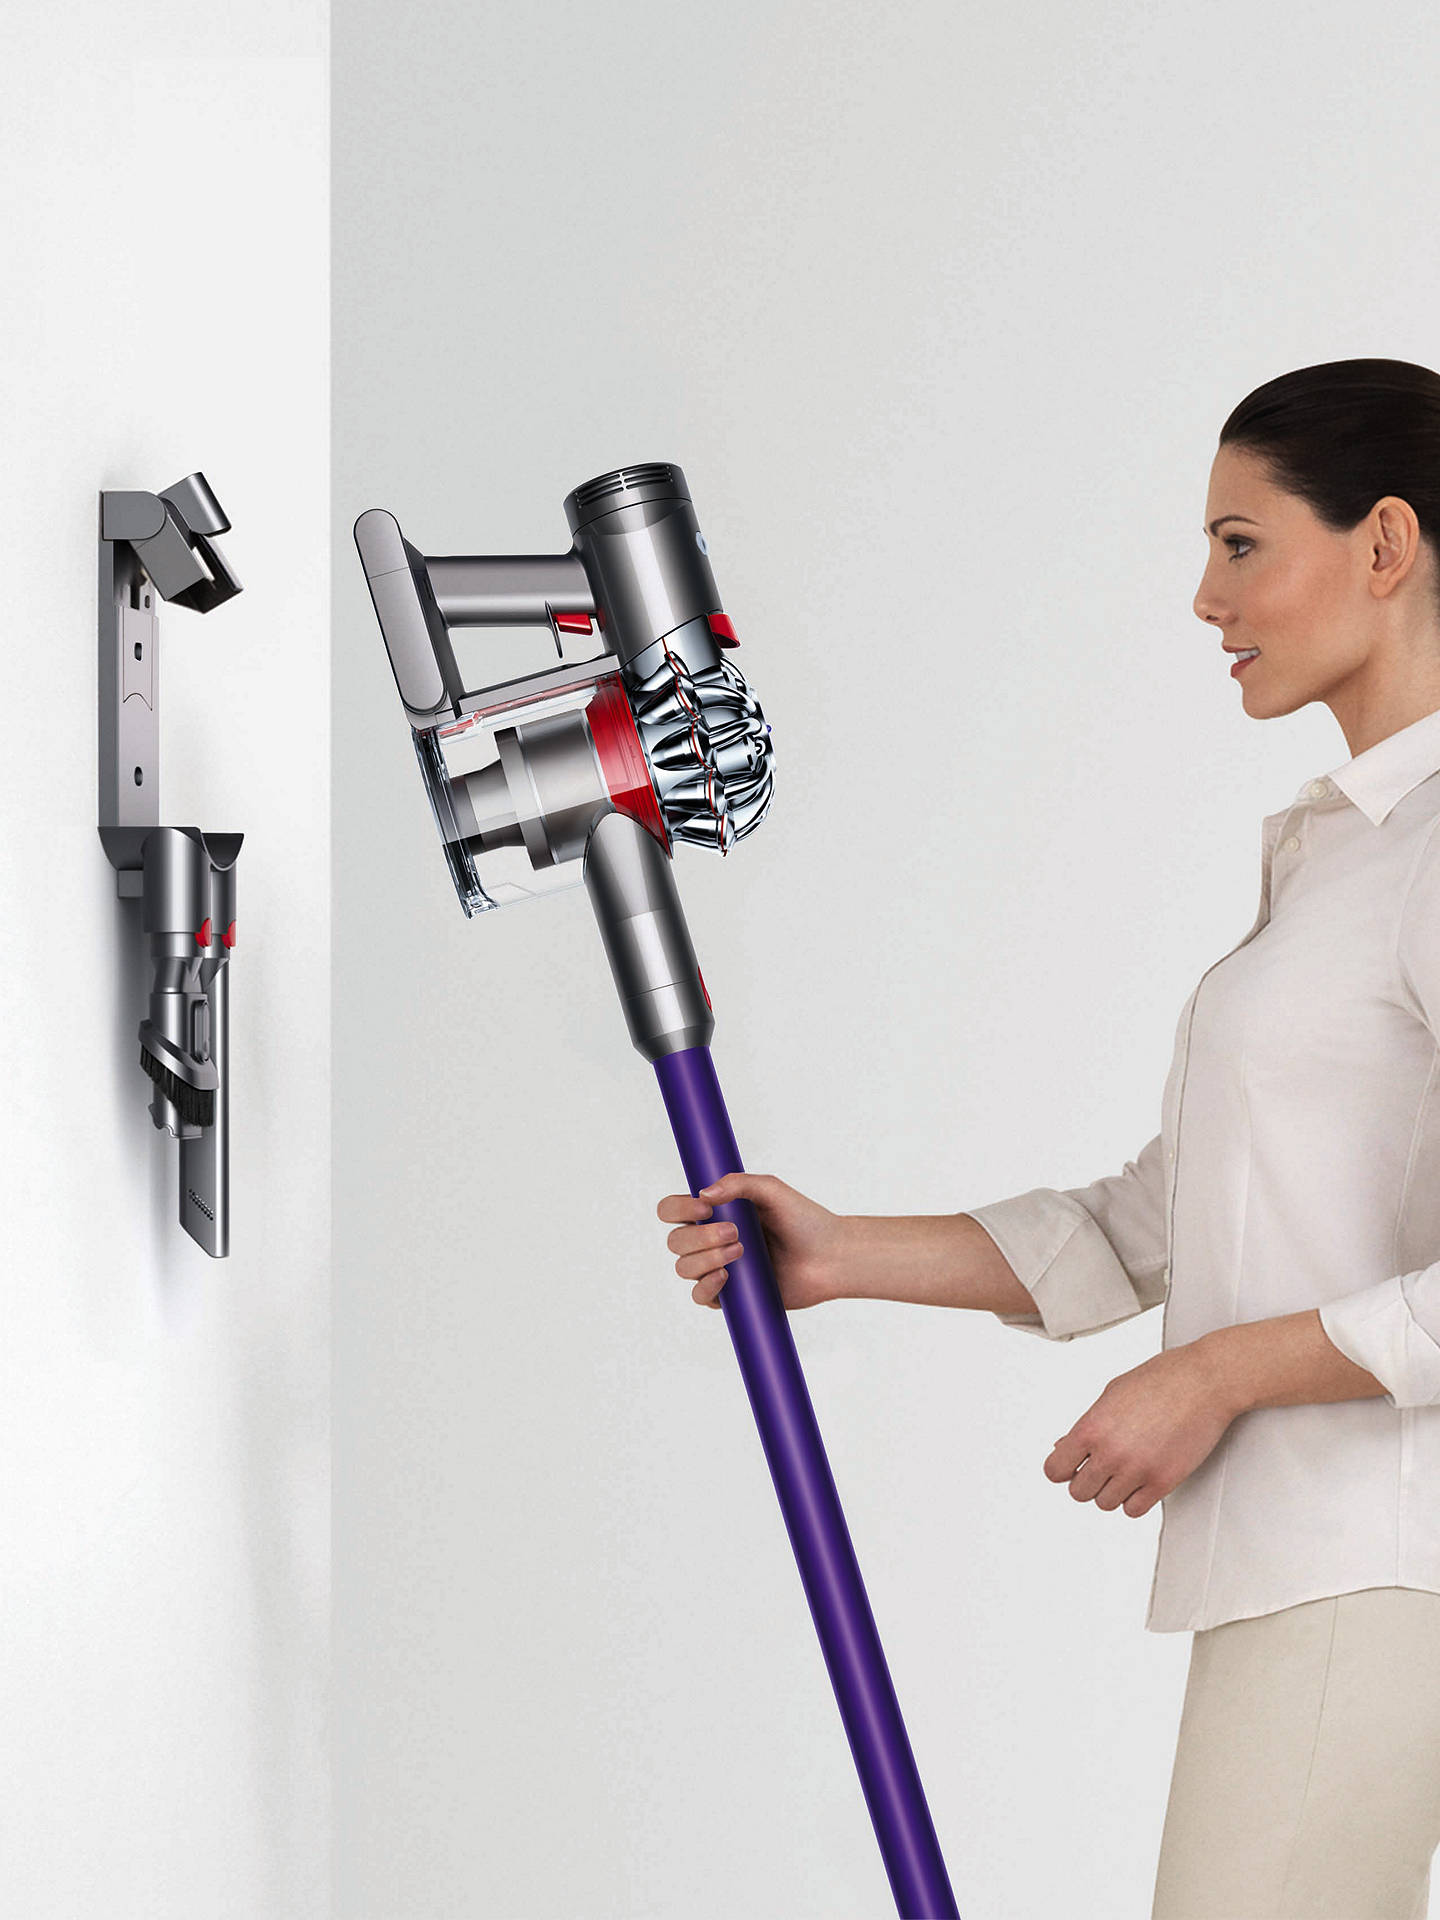 BuyDyson V7 Animal Cordless Vacuum Cleaner Online at johnlewis.com